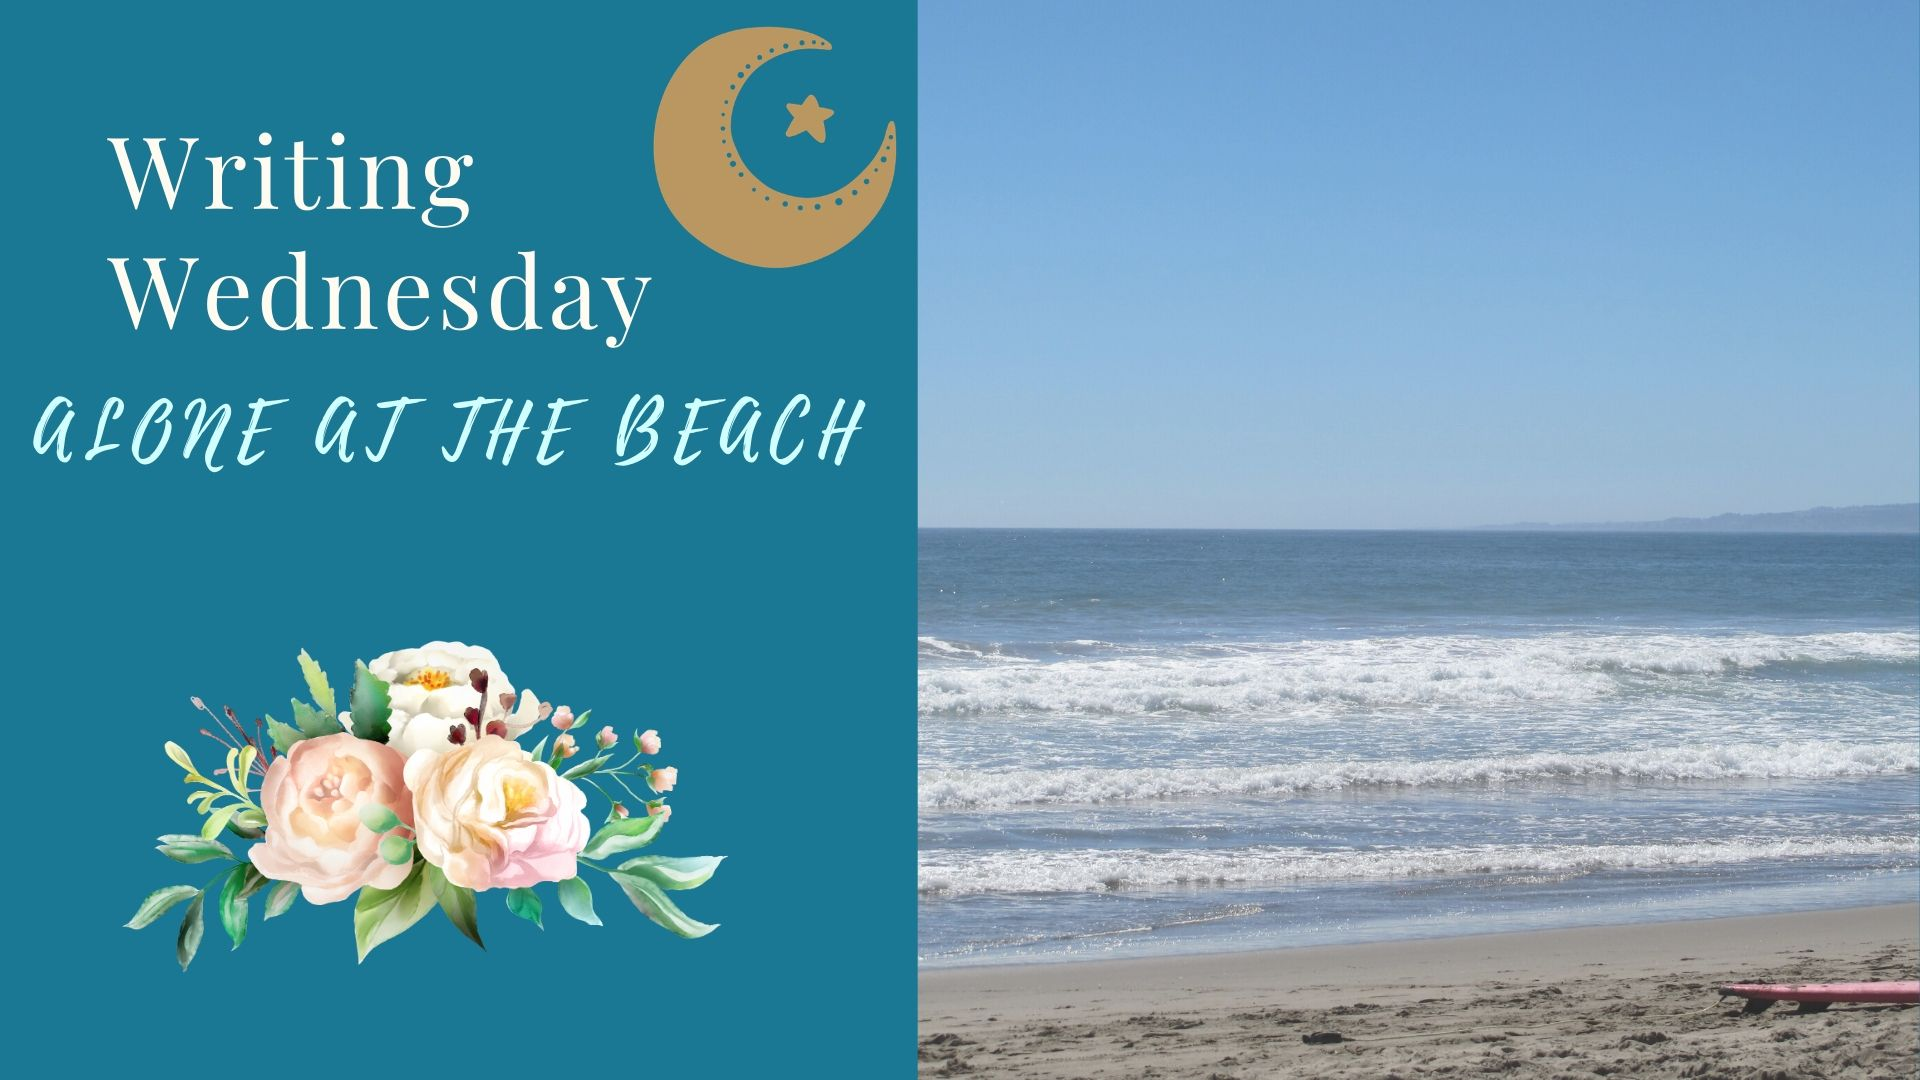 You are currently viewing Writing Wednesday: Alone at the Beach